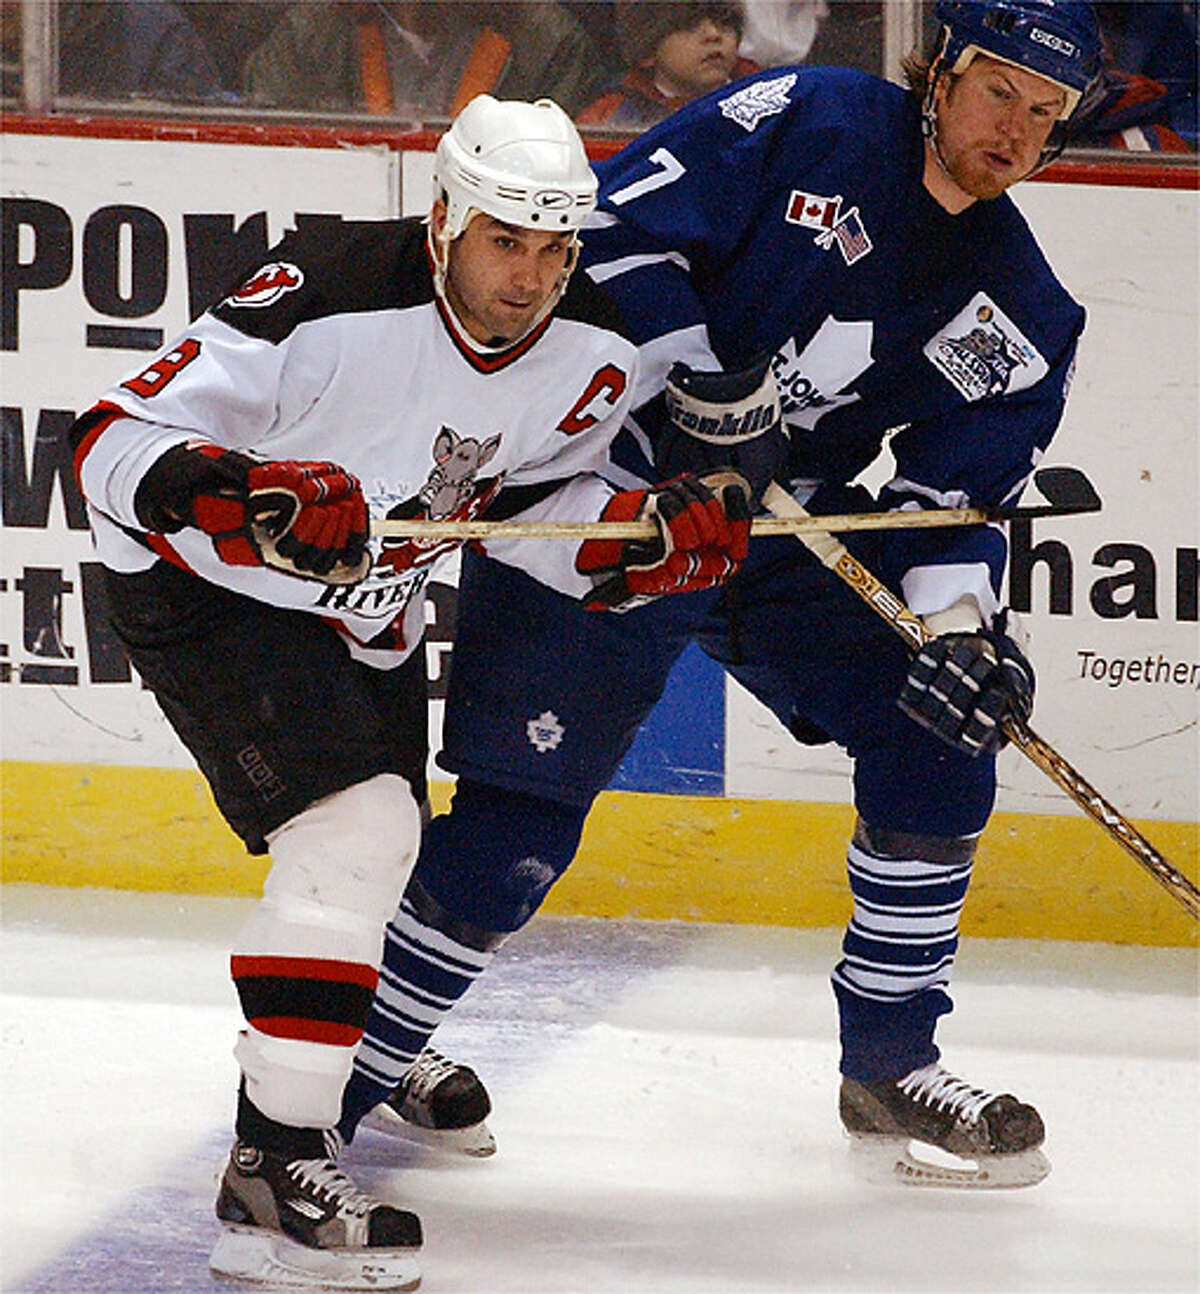 Mar. 27, 2002: Albany River Rats #8-Sylvain Cloutier battles St. John's Maple Leafs #7-Andre Payette in the first period of game at the Pepsi Arena.